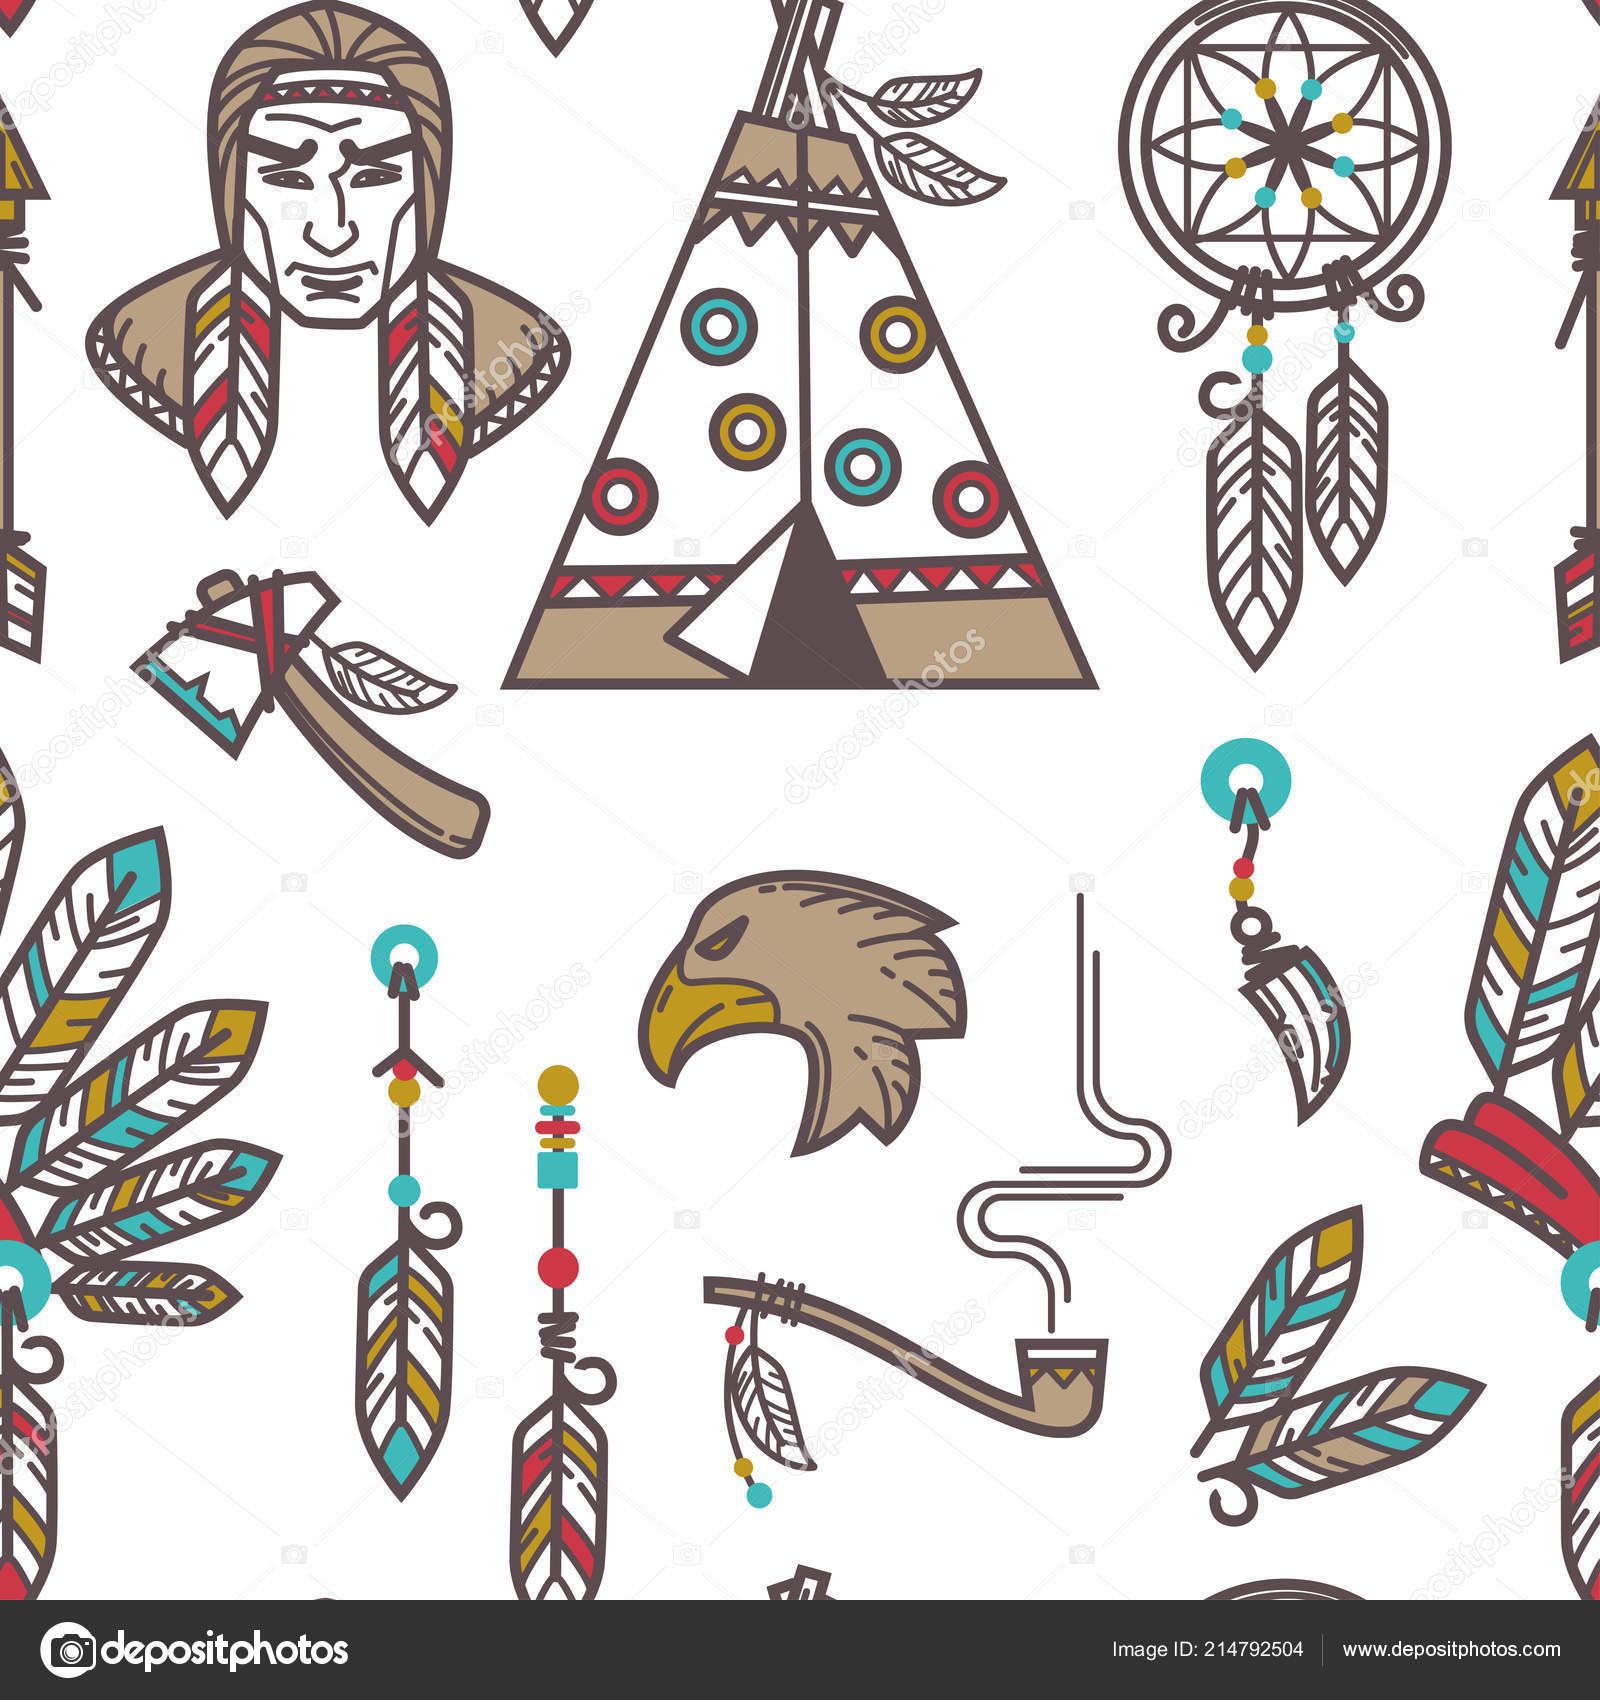 Native American Indians Traditional Culture Symbols Vector Icons.